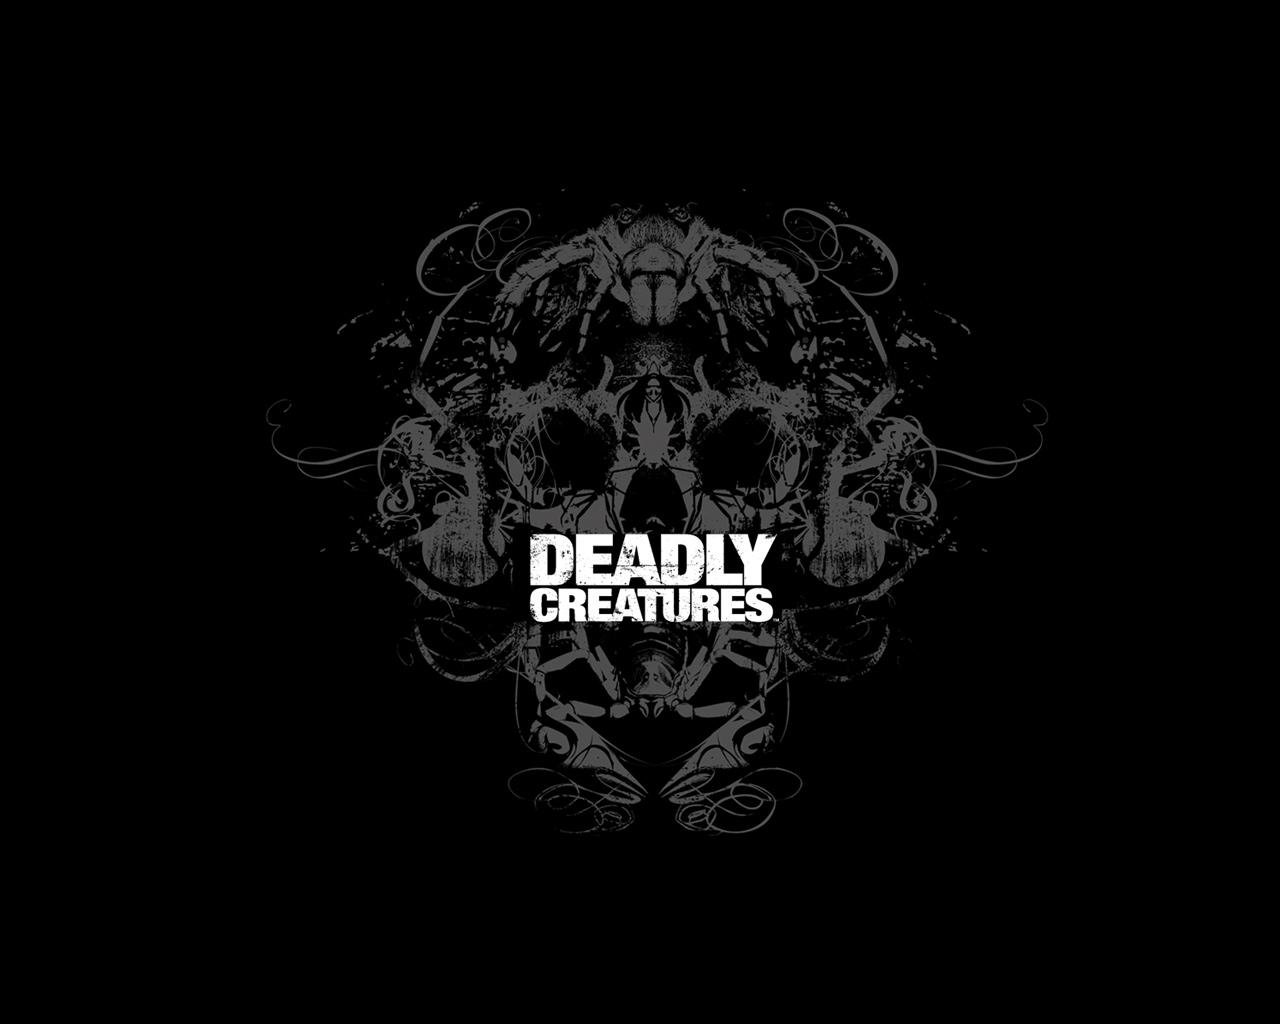 Обои Deadly Creatures 1280x1024